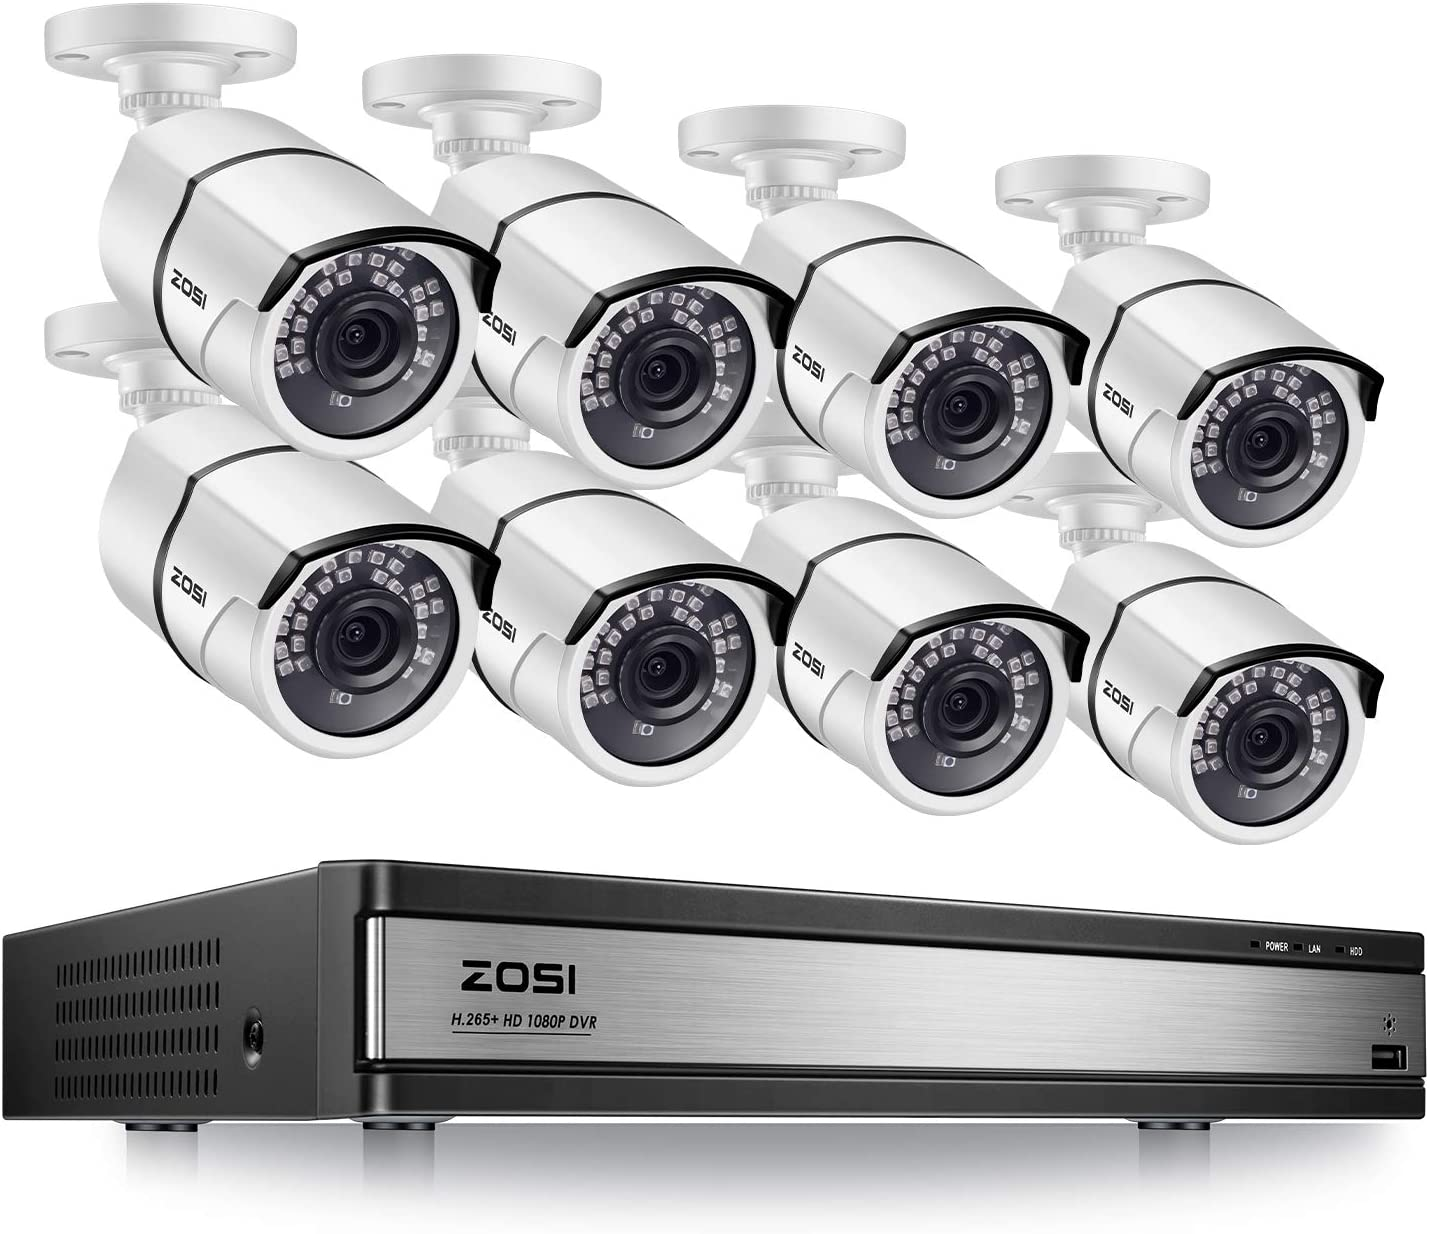 ZOSI 1080p 16 Channel Security Camera System, H.265+ 16CH Hybrid DVR without Hard Drive and 8 x 1080p CCTV Bullet Camera Outdoor Indoor with 120ft Night Vision ,105°Wide Angle, Remote Access